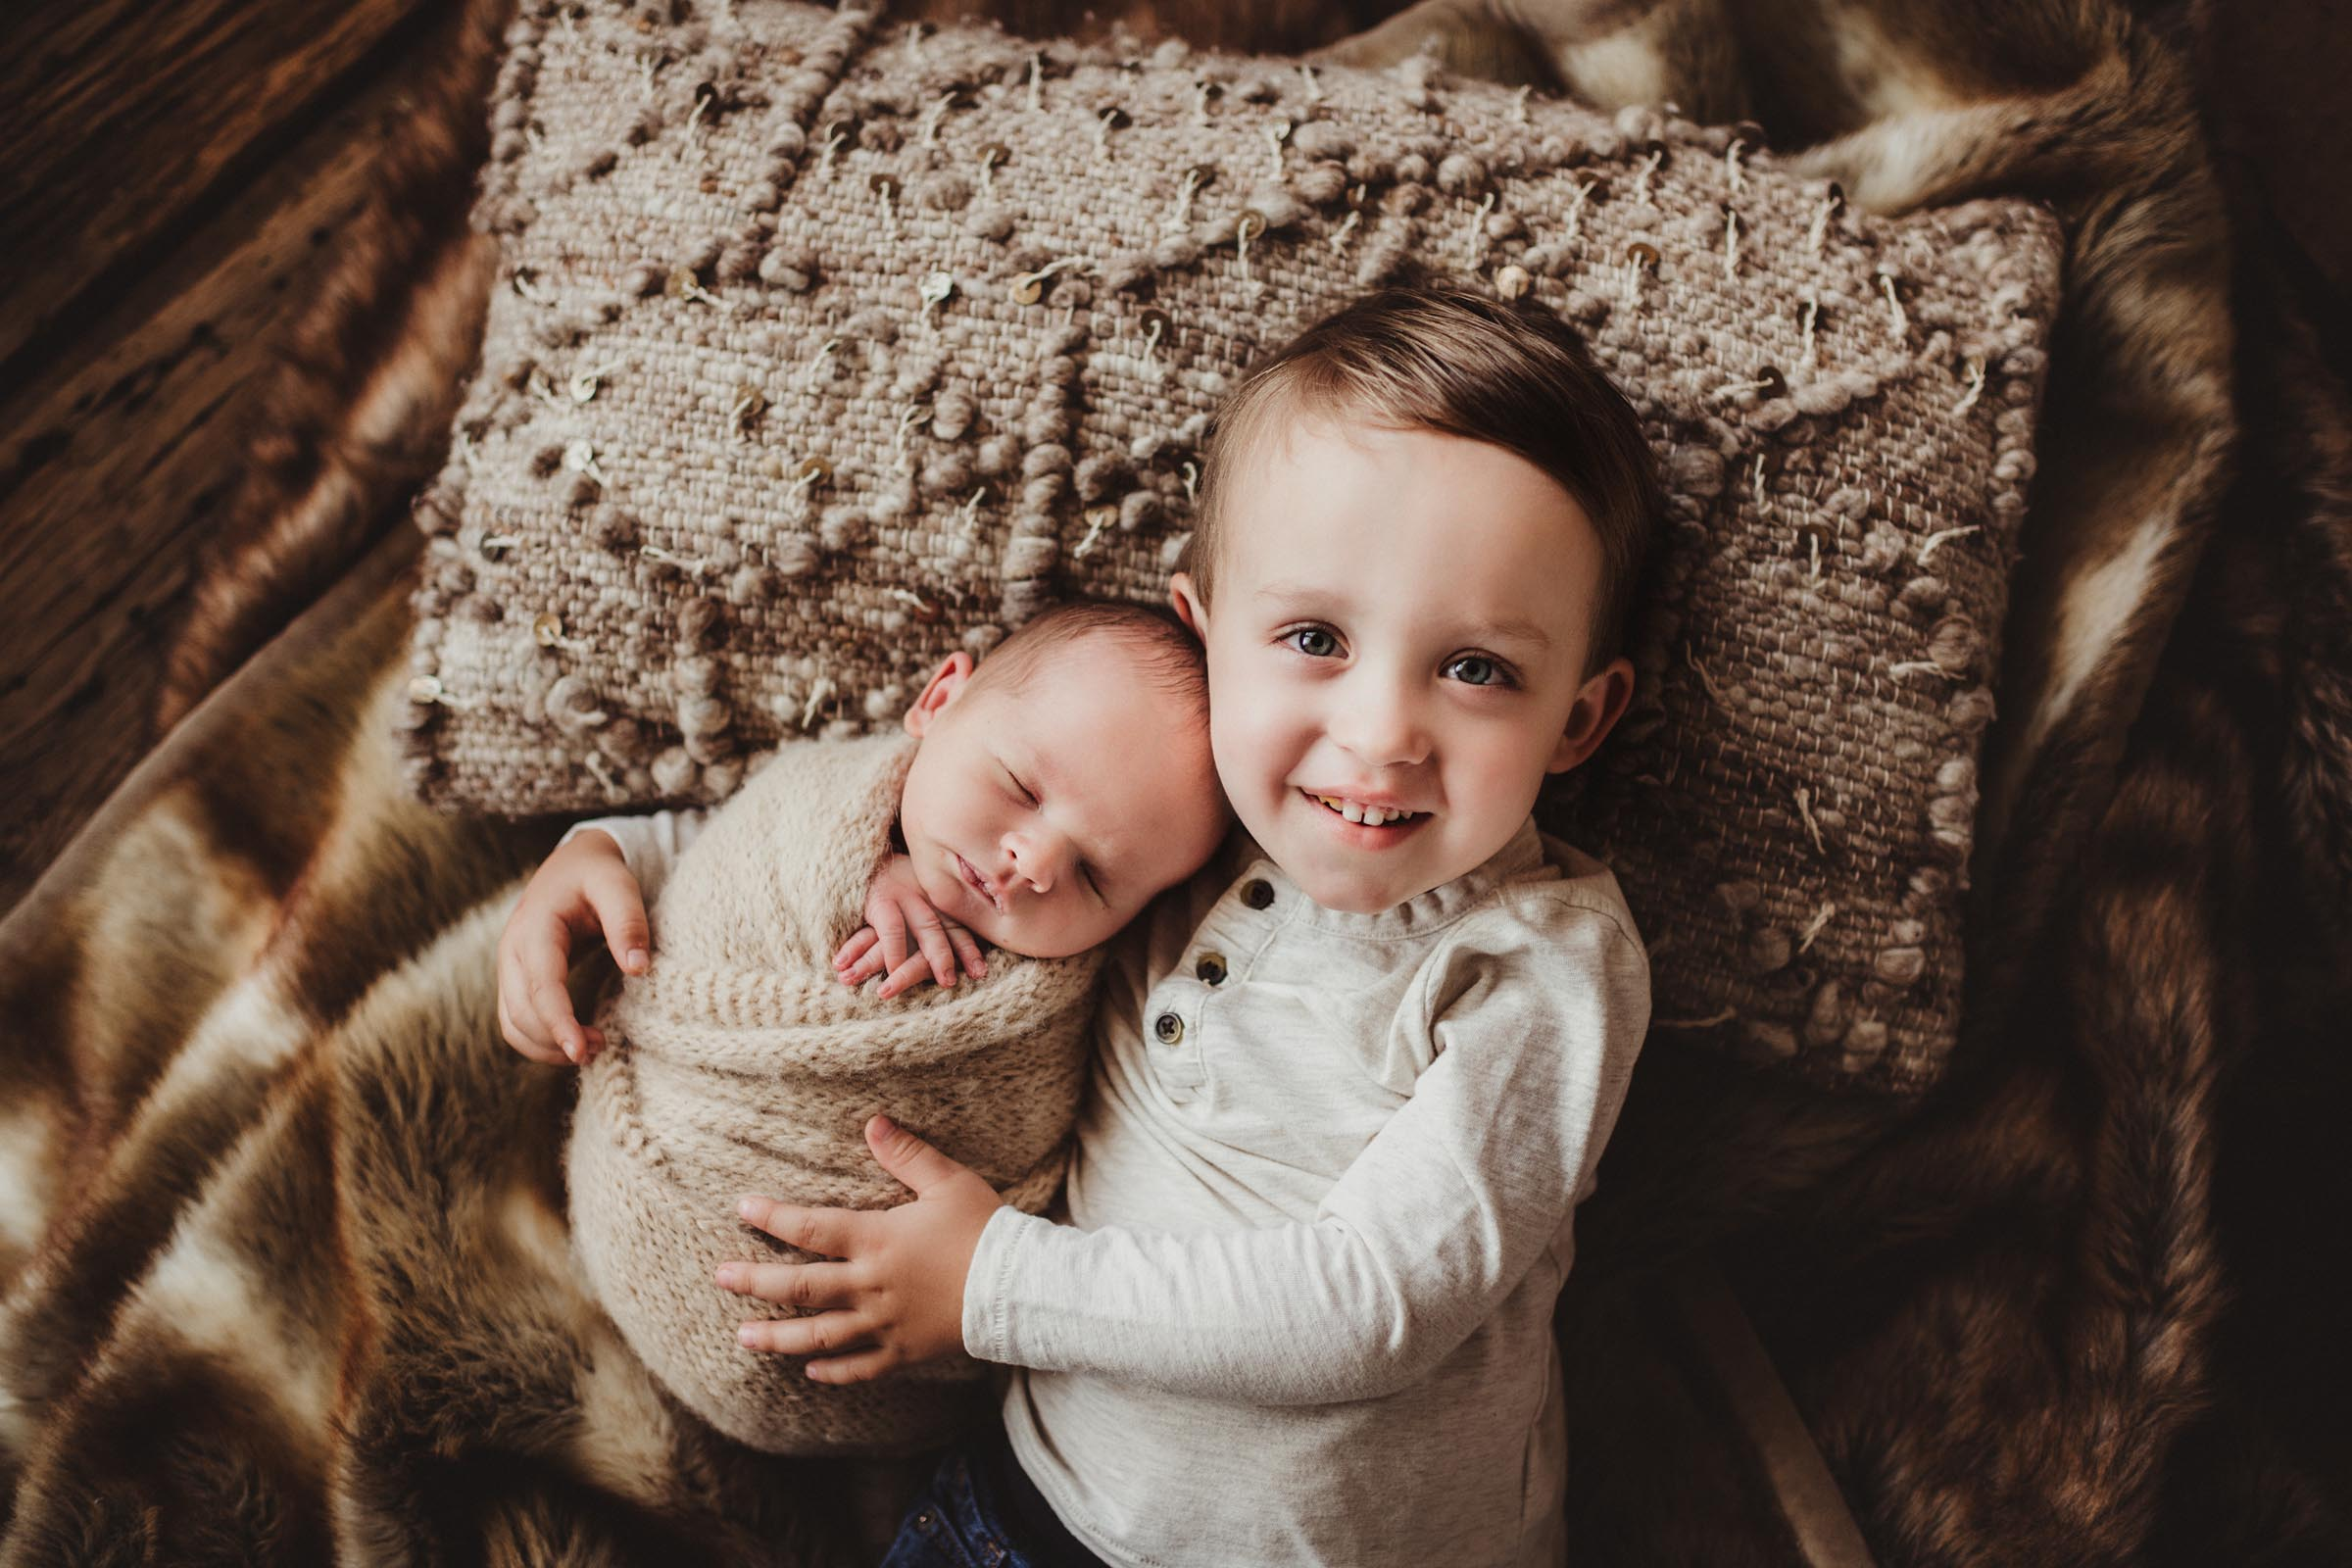 brother hugging his wrapped baby brother